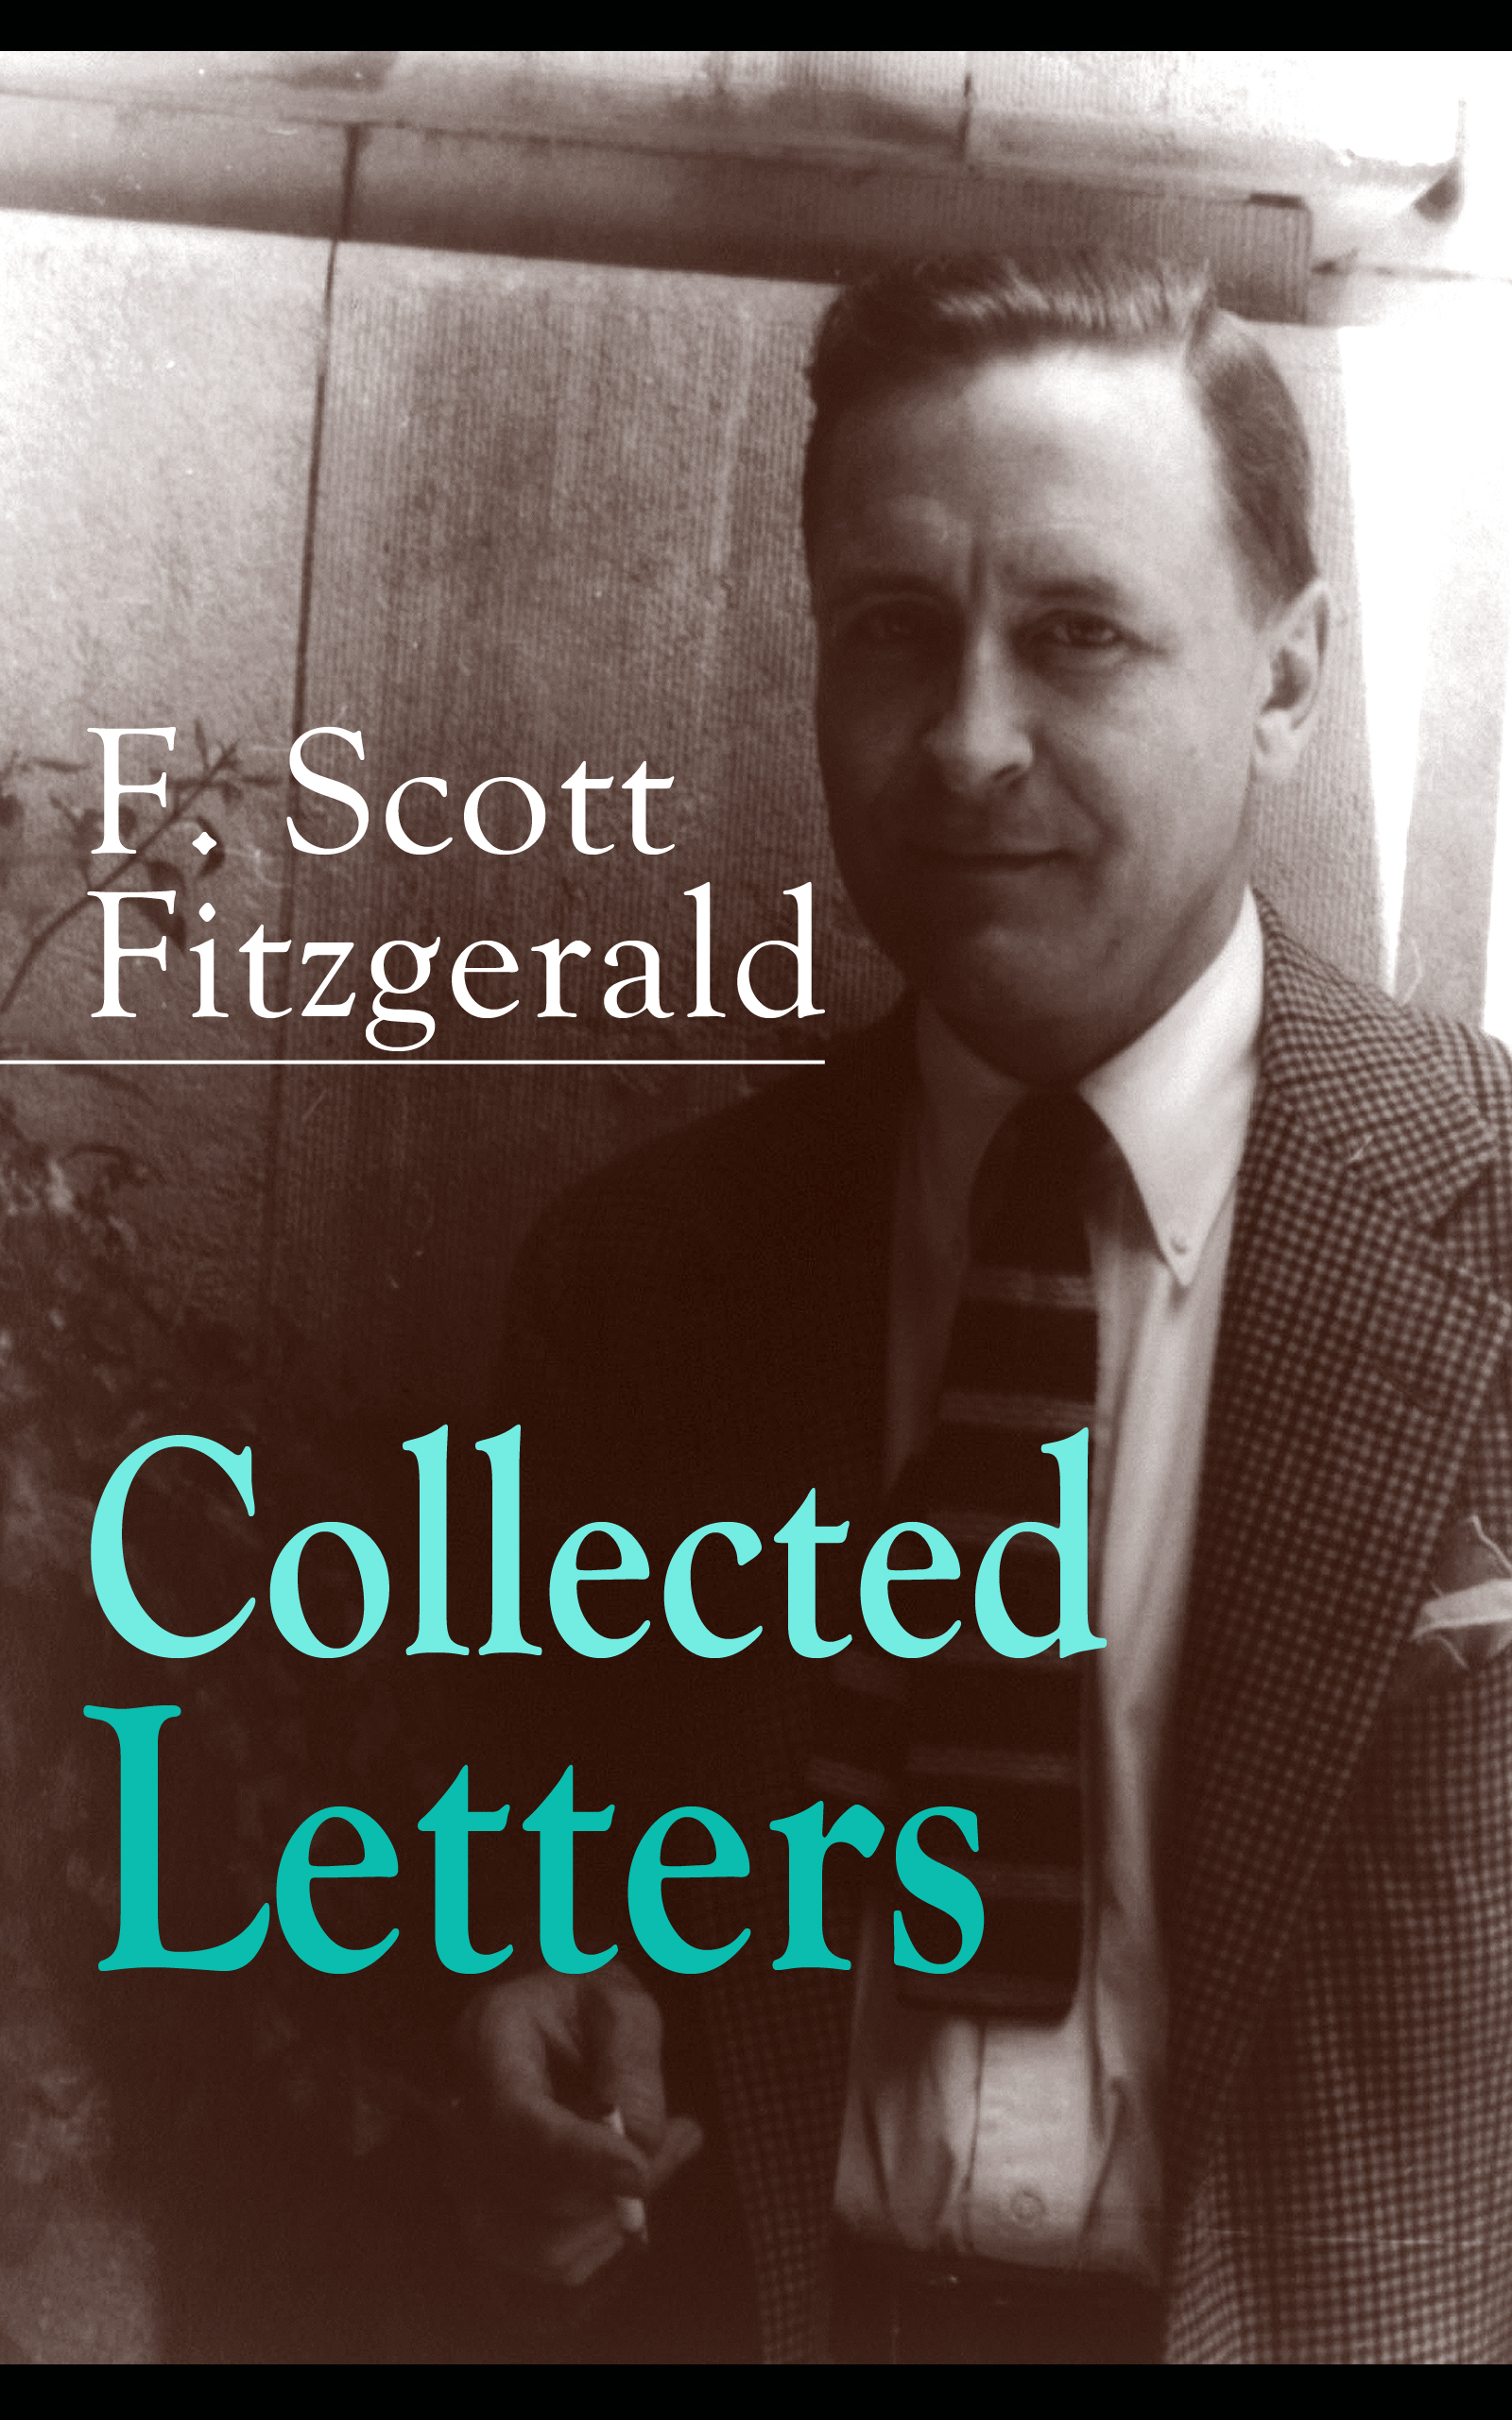 Фото - F. Scott Fitzgerald Collected Letters of F. Scott Fitzgerald cengage learning gale a study guide for f scott fitzgerald s a new leaf